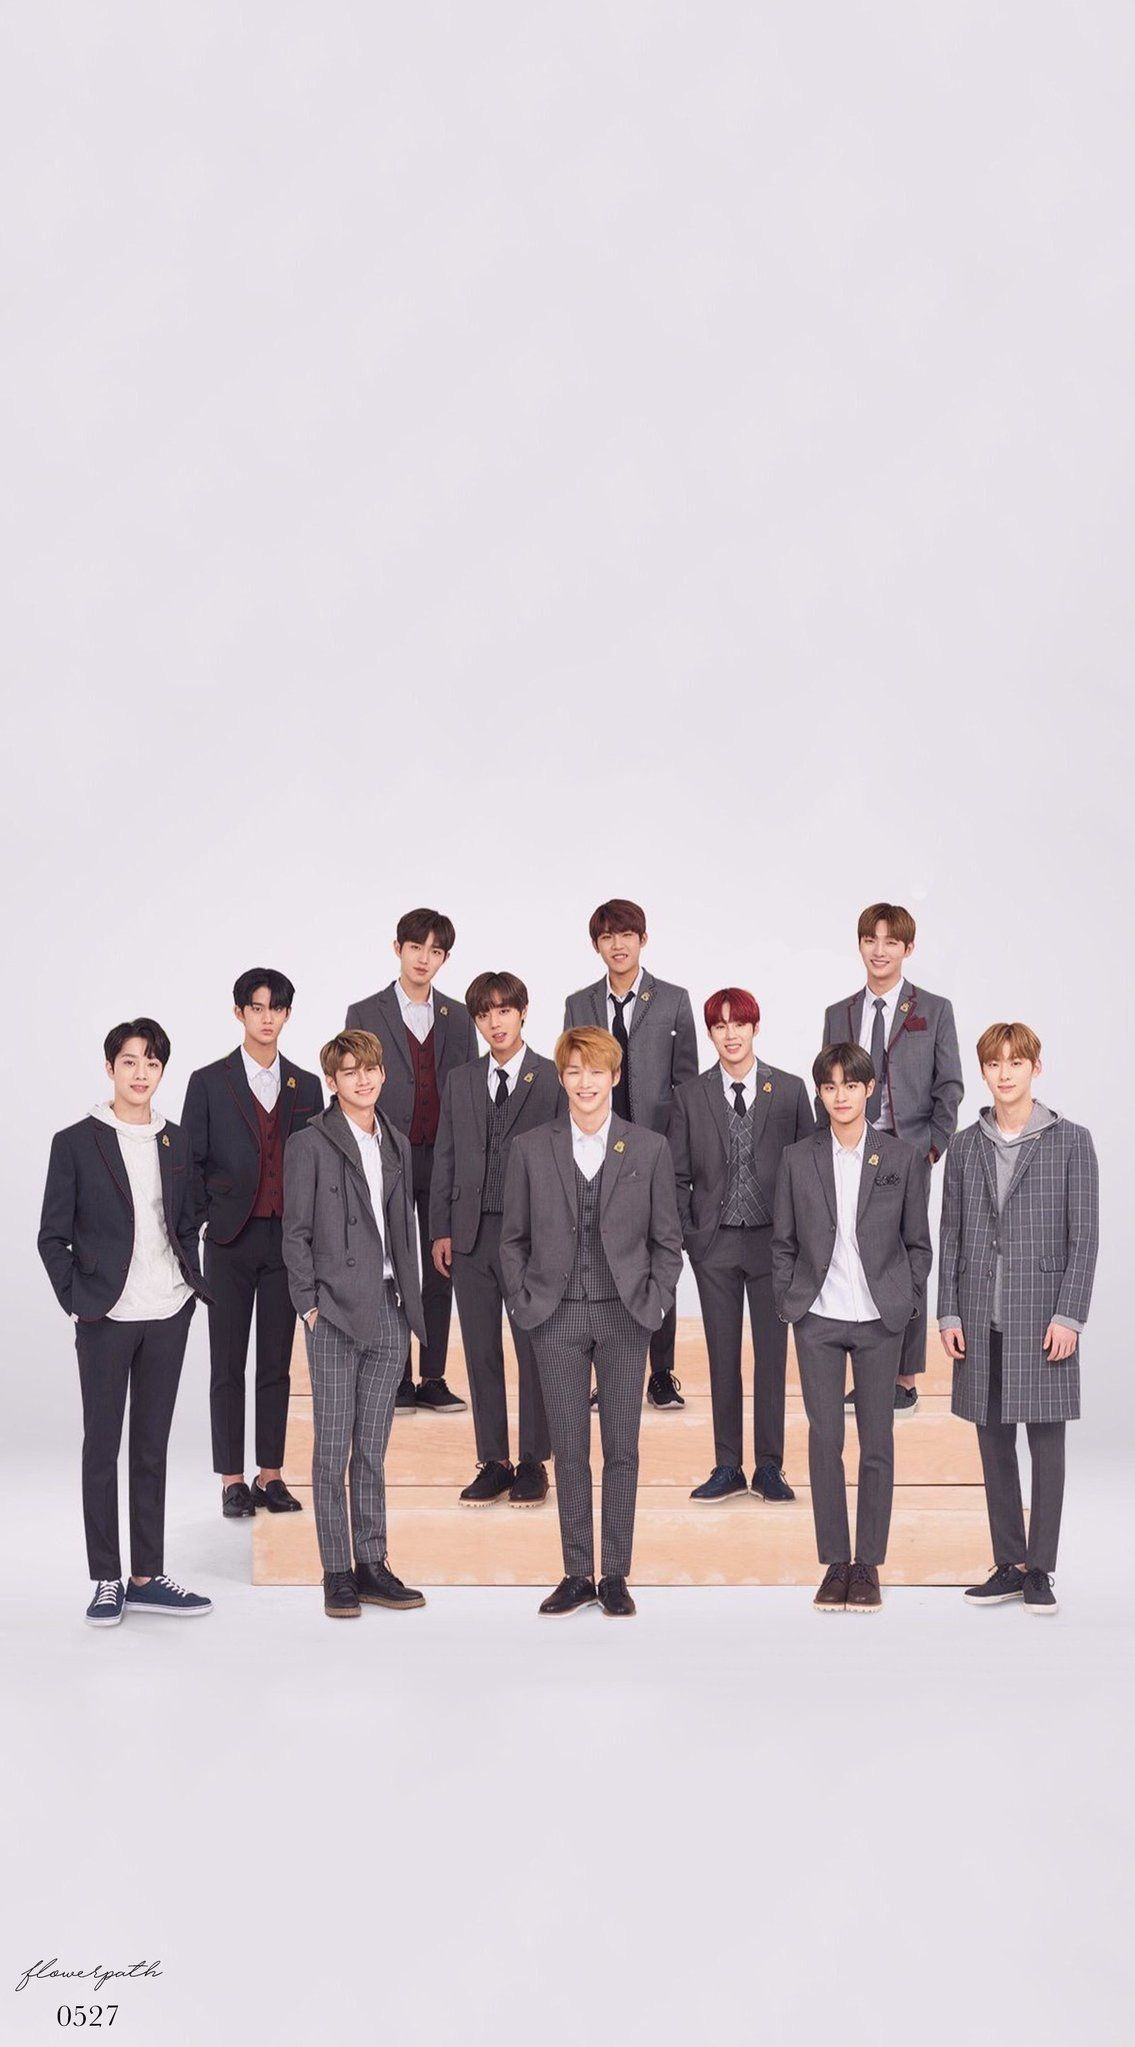 Pin By 𝙩𝙝𝙚𝙧𝙚𝙛𝙤𝙧𝙚 On Wanna One Cf In 2019 Wallpaper